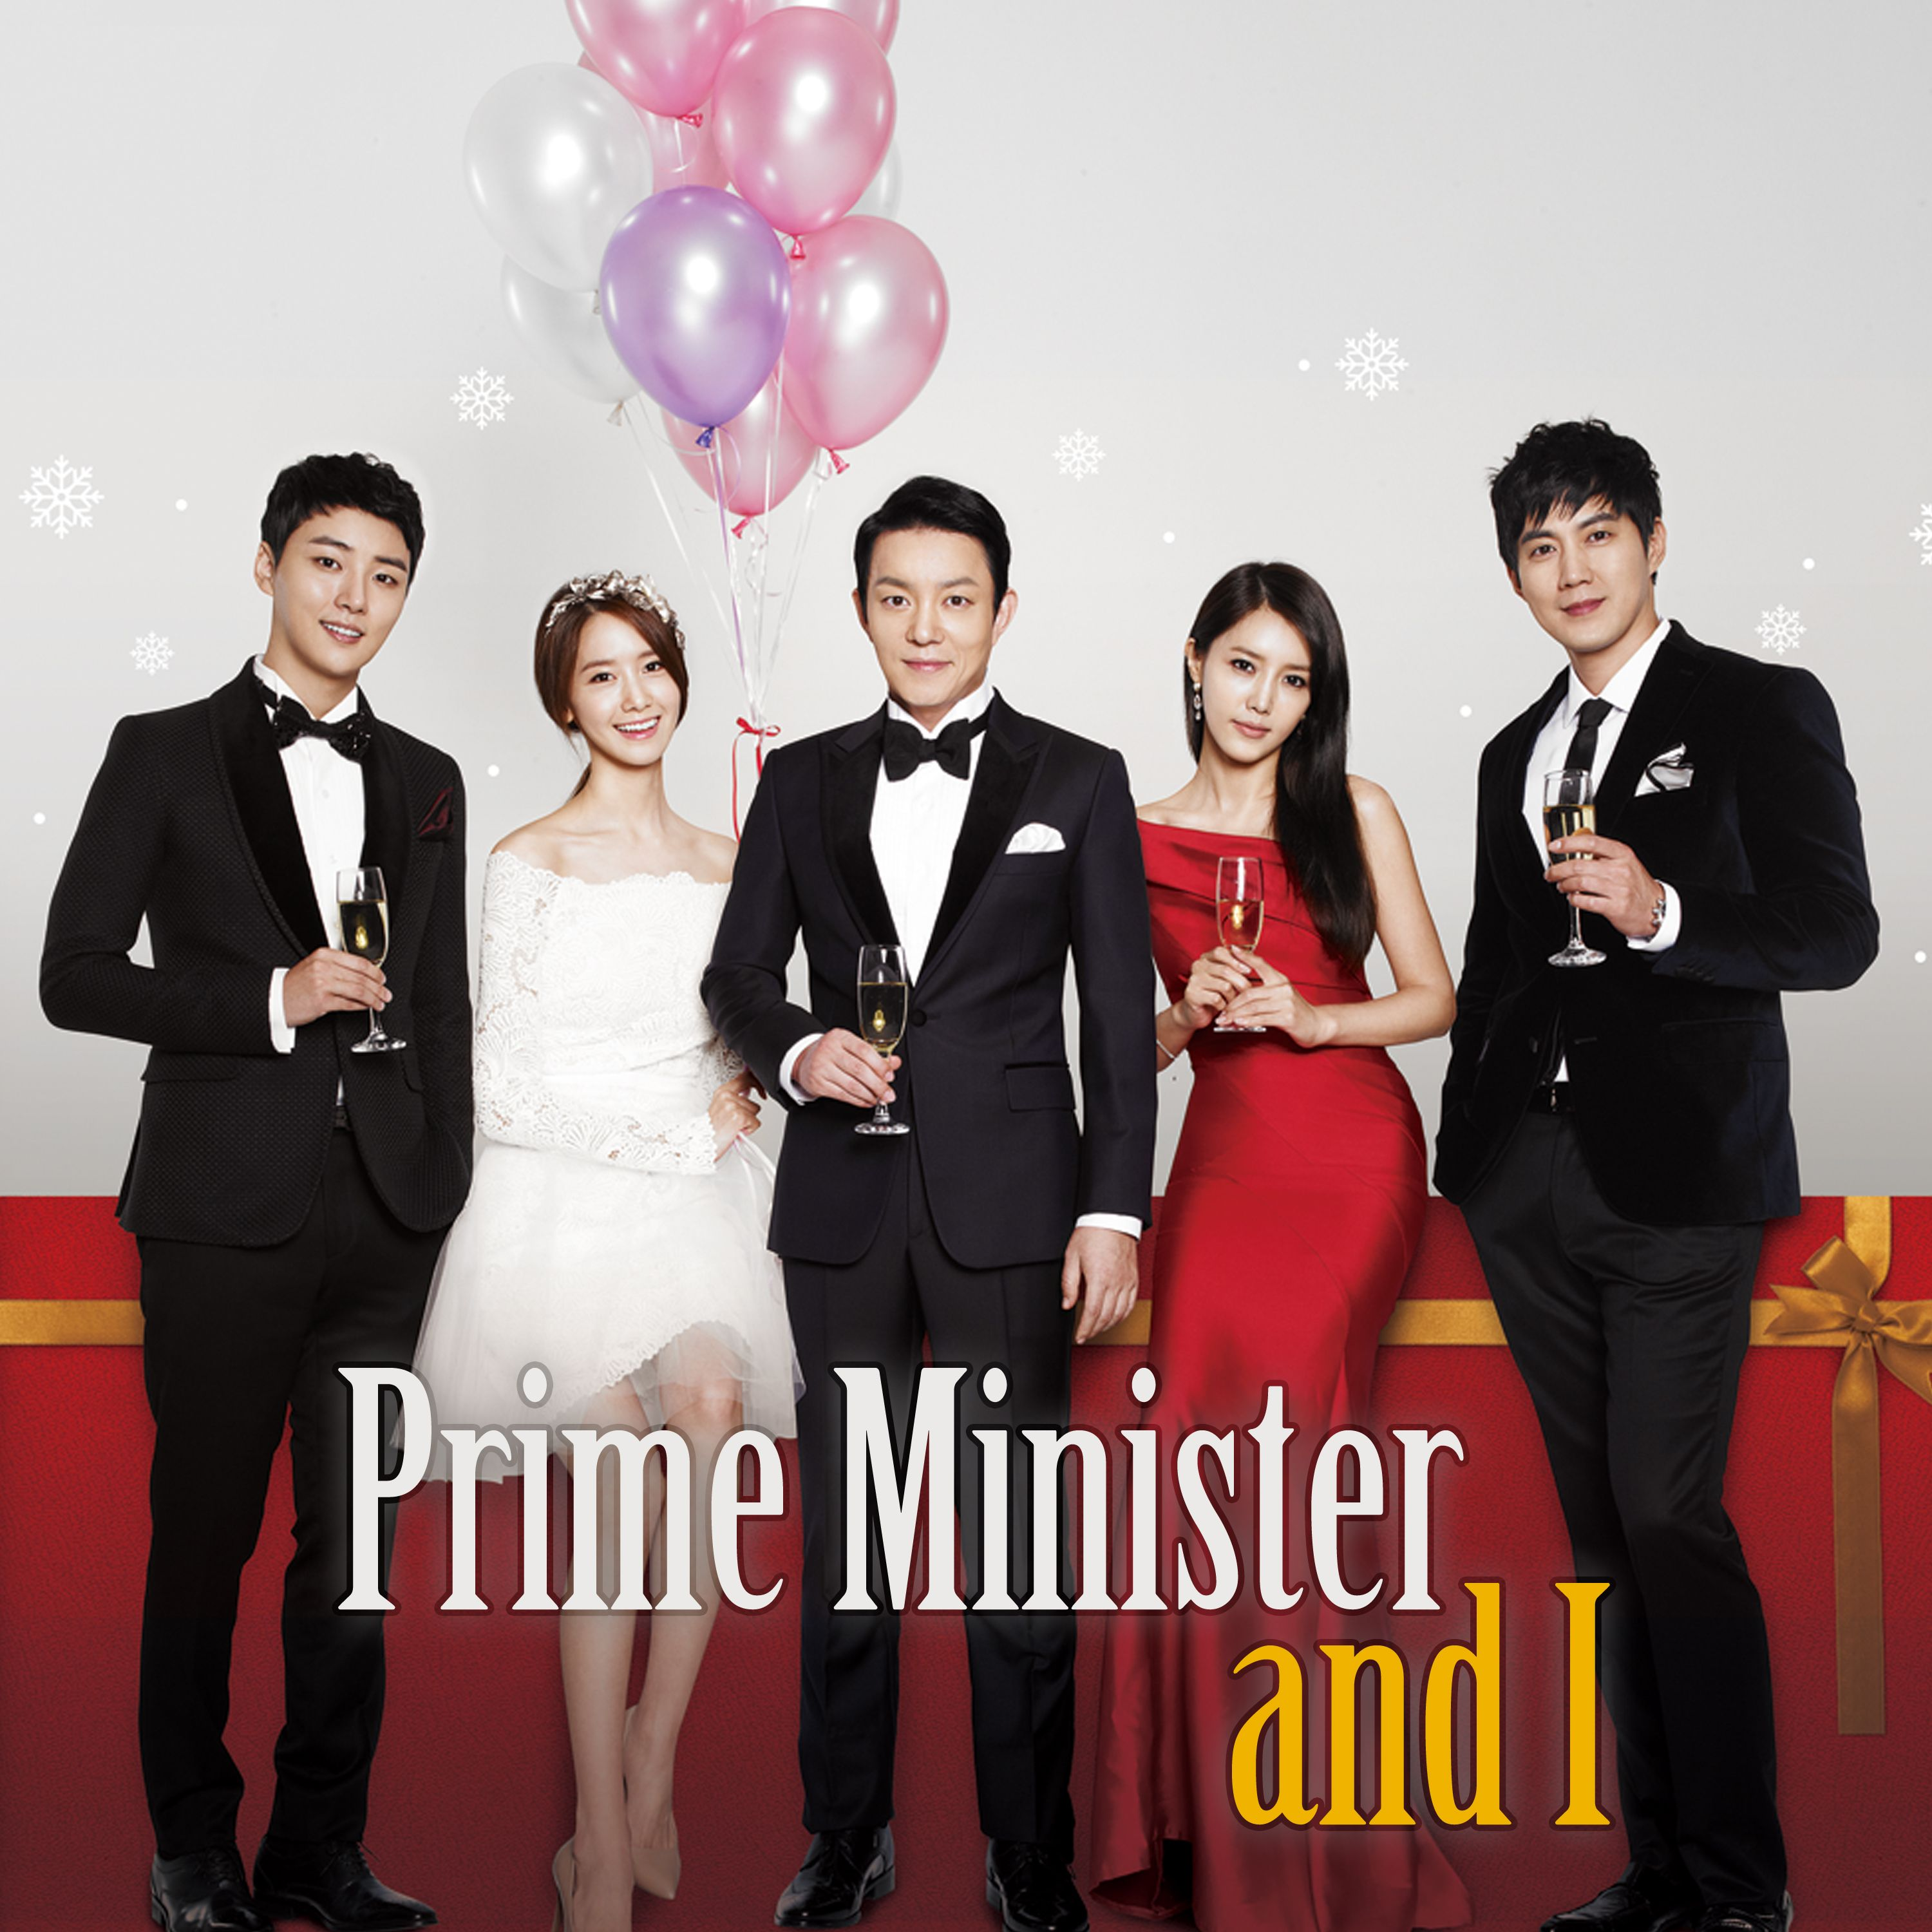 Prime Minister and I Episode 1 - 총리와 나 - Watch Full